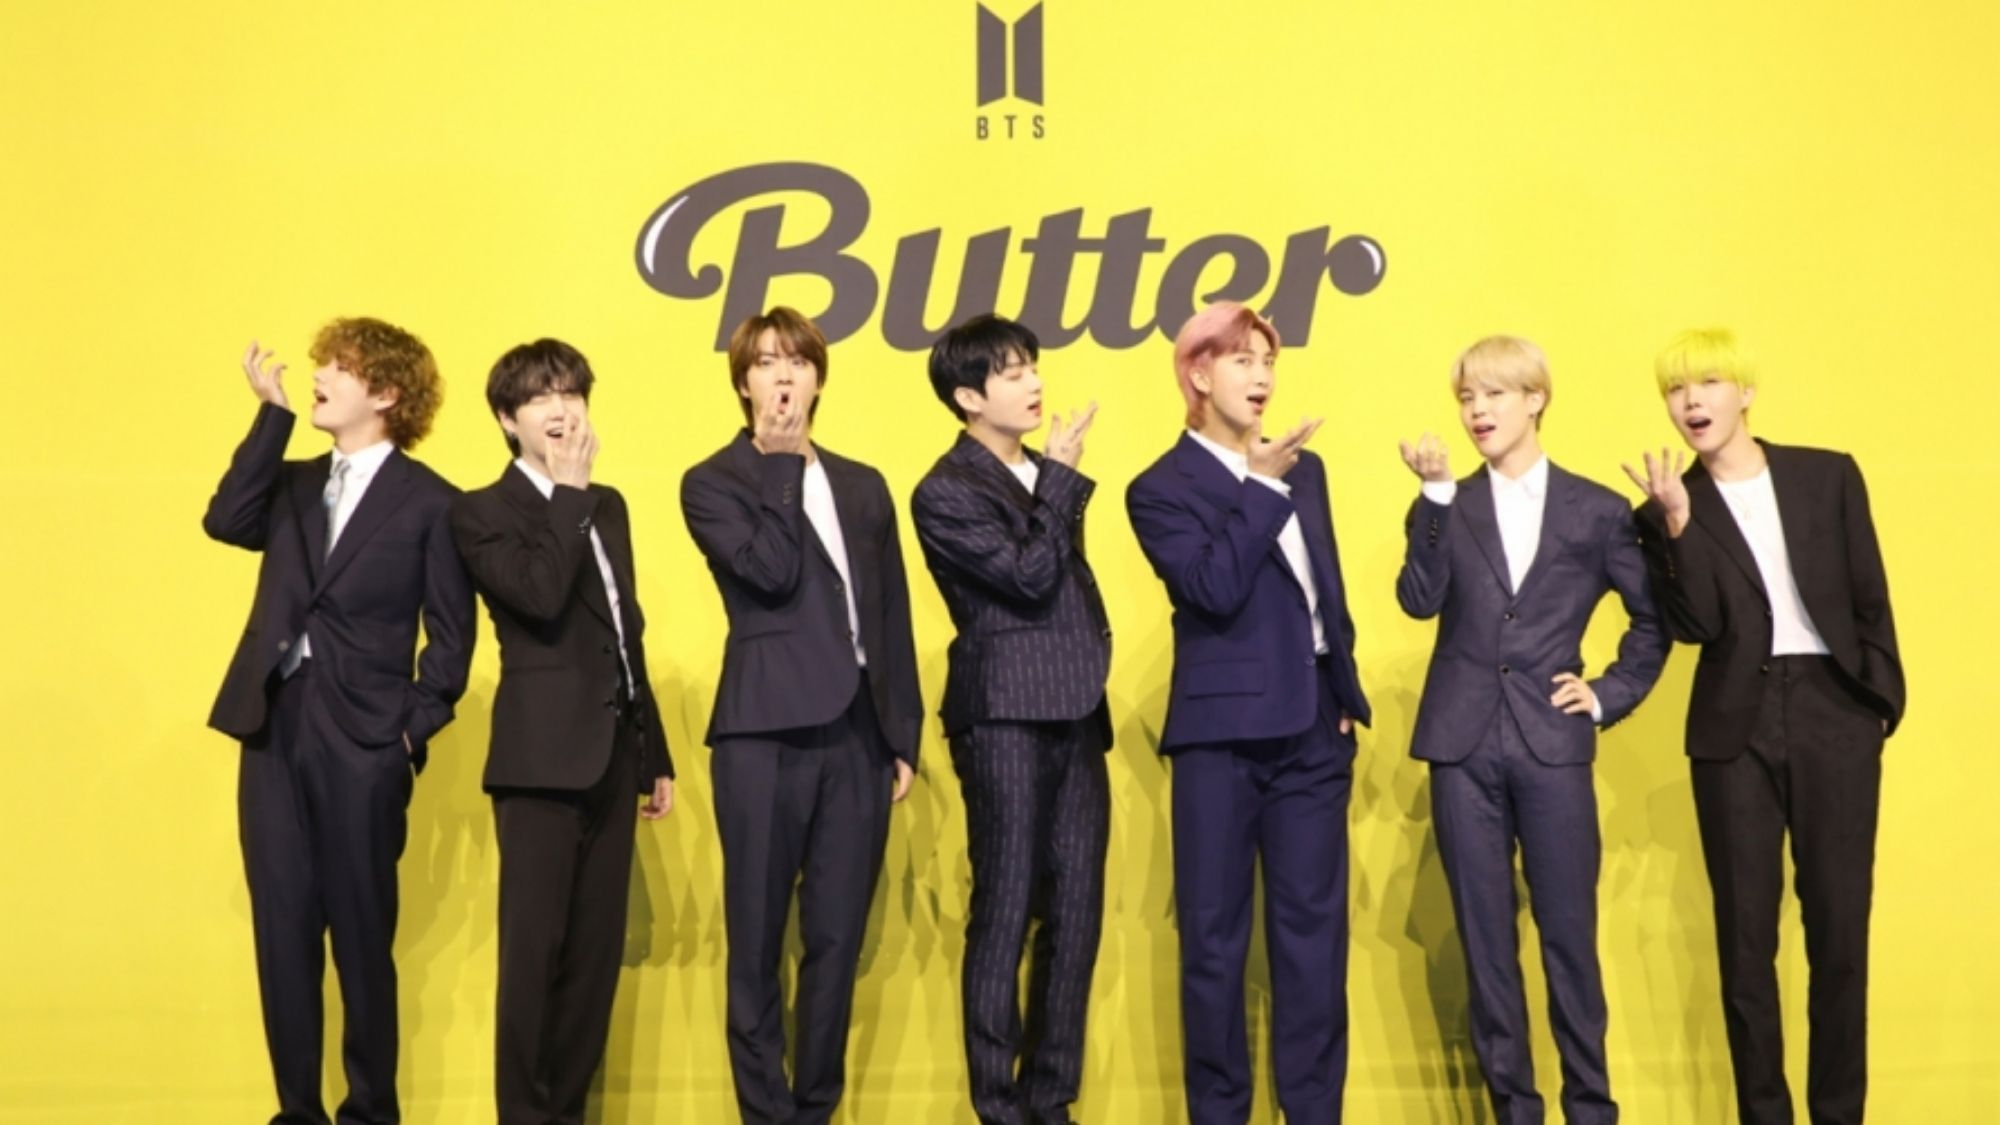 """New BTS song """"Butter"""" sweeps iTunes charts in 101 regions"""